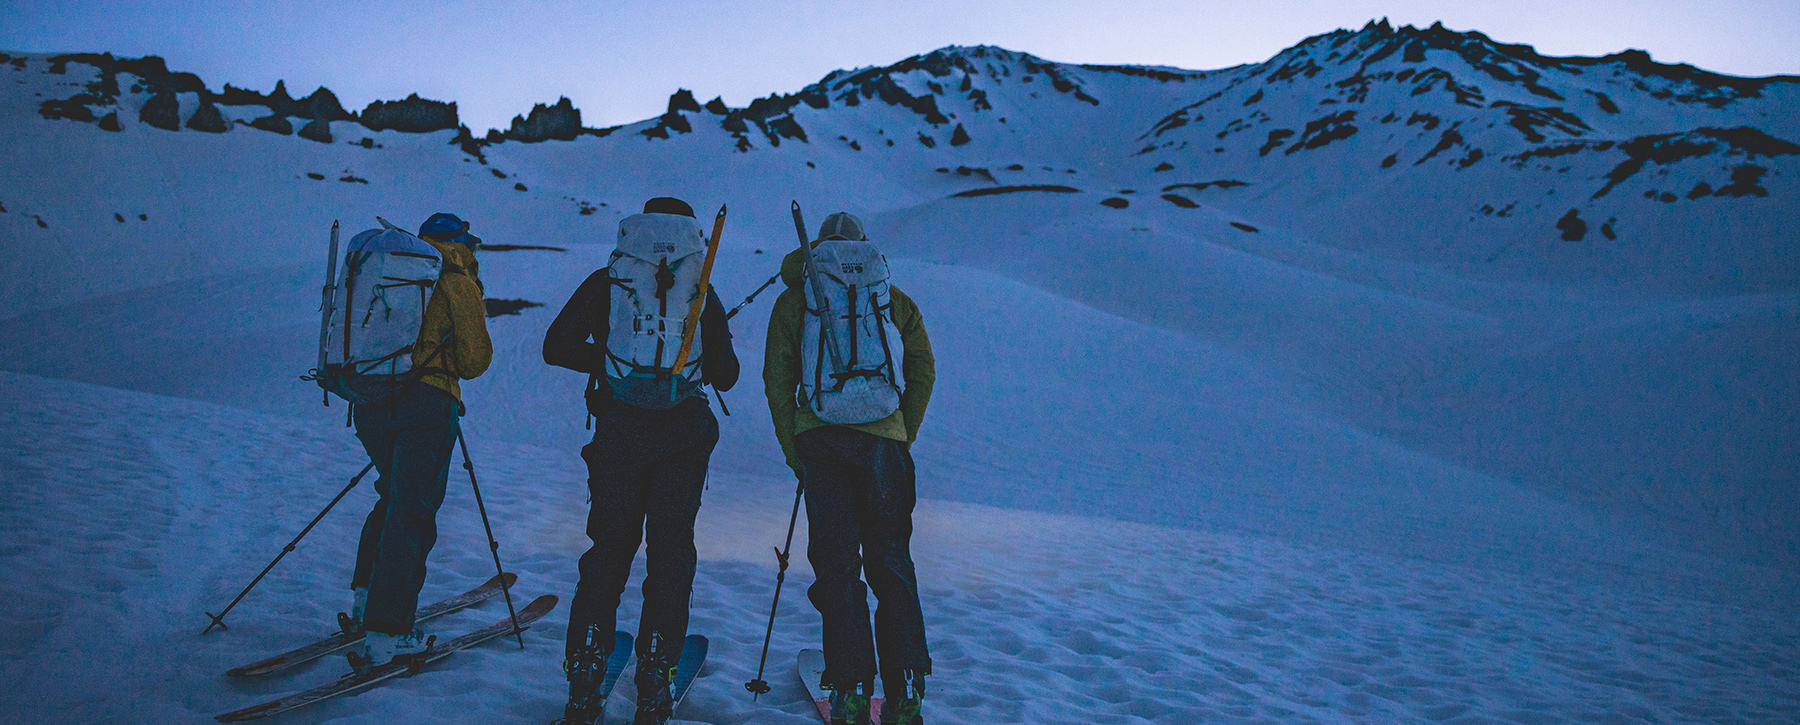 Three skiers planning their approach at dusk, looking at the mountain ahead